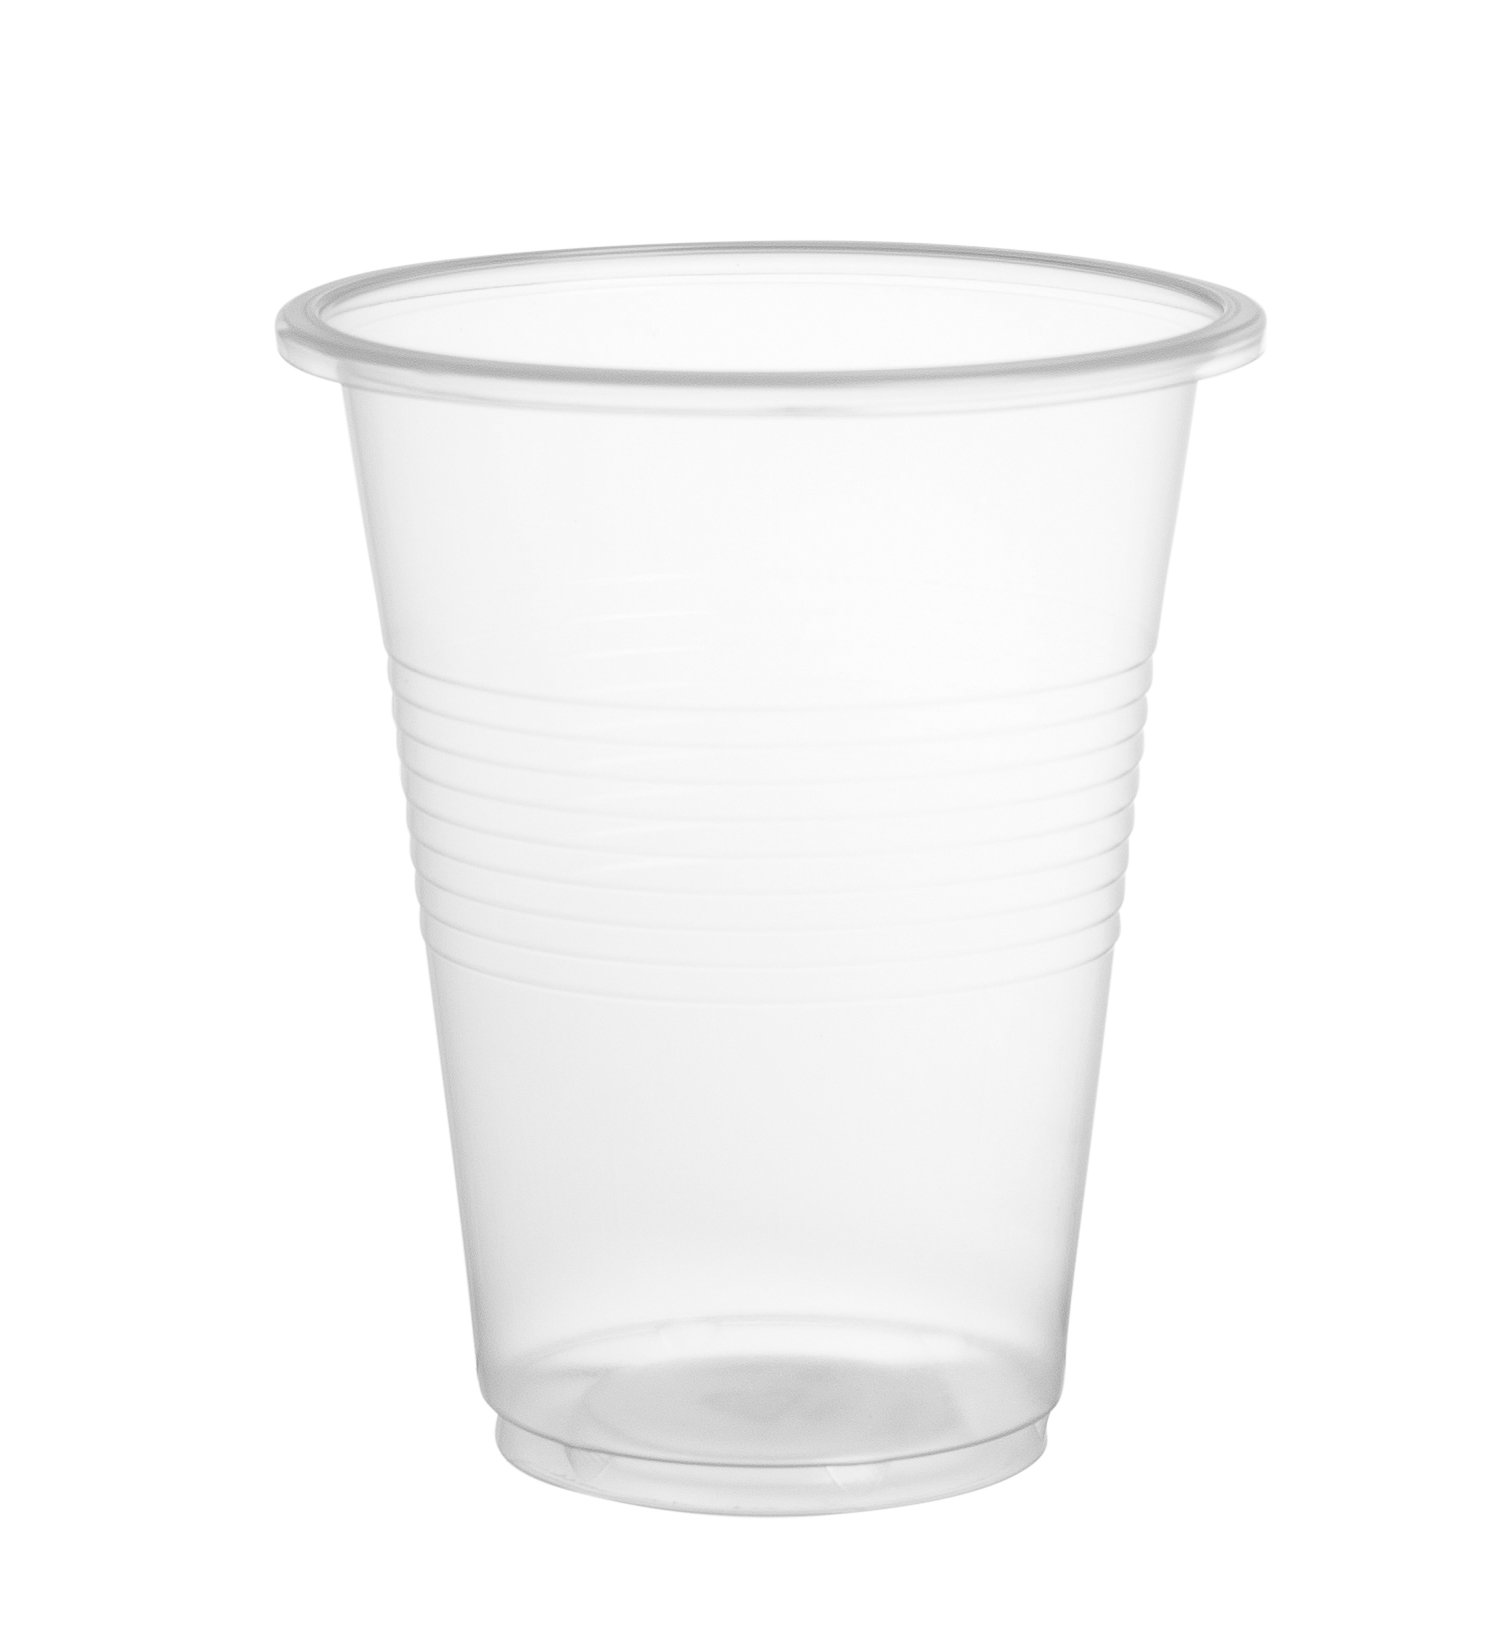 Disposoware D7OZPPC1200 7oz. PP Plastic Cups, 100/Bag, 12 Bags/Case (Case of 1200)